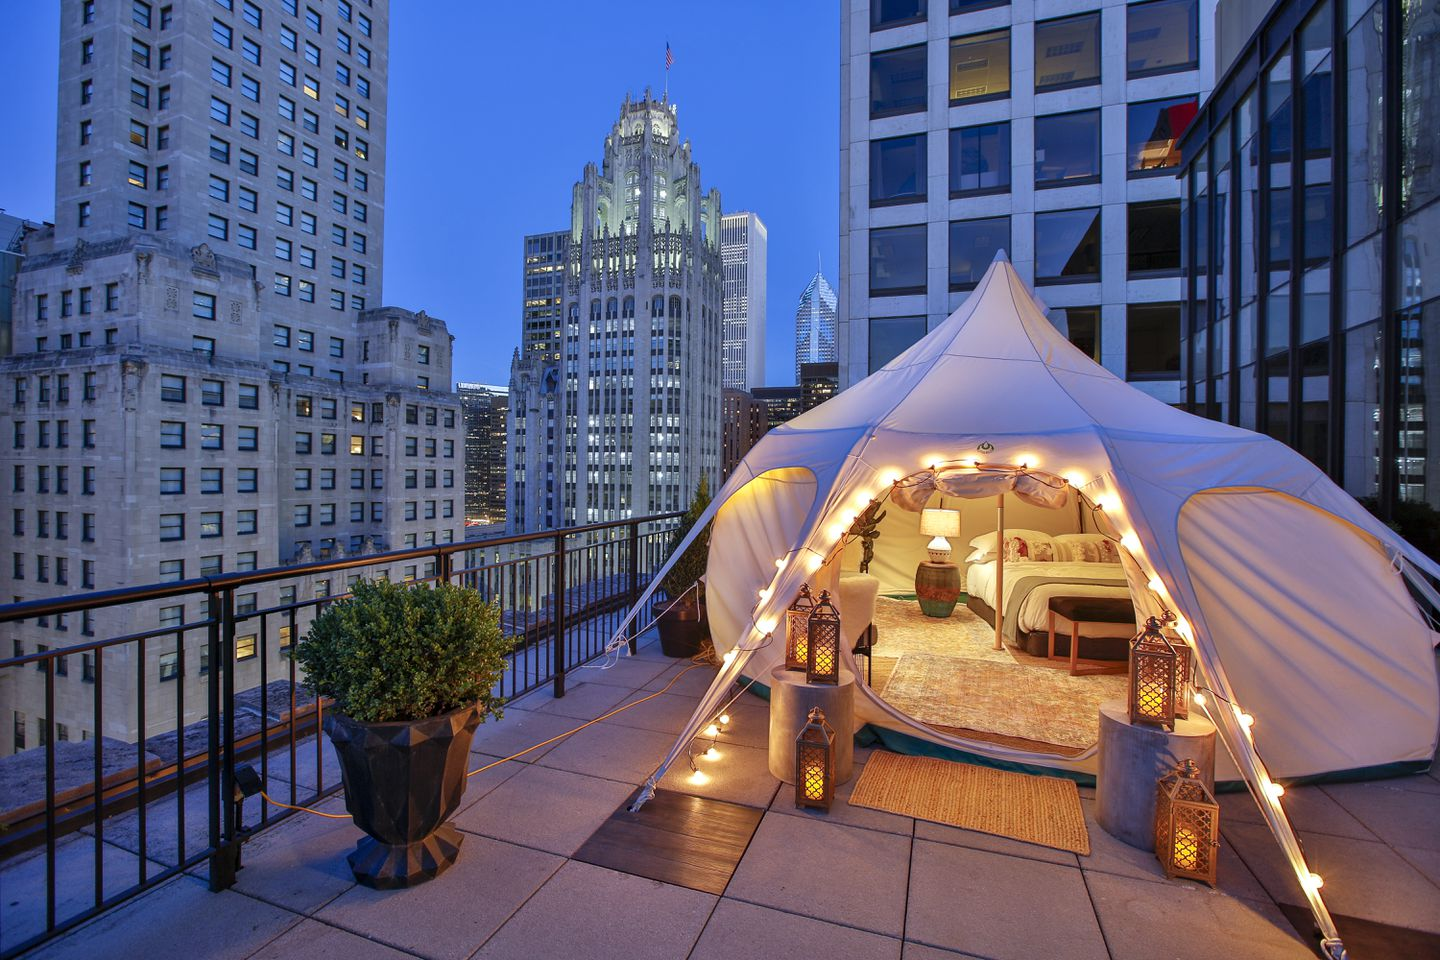 Not comfortable staying at a hotel yet? Try glamping at one